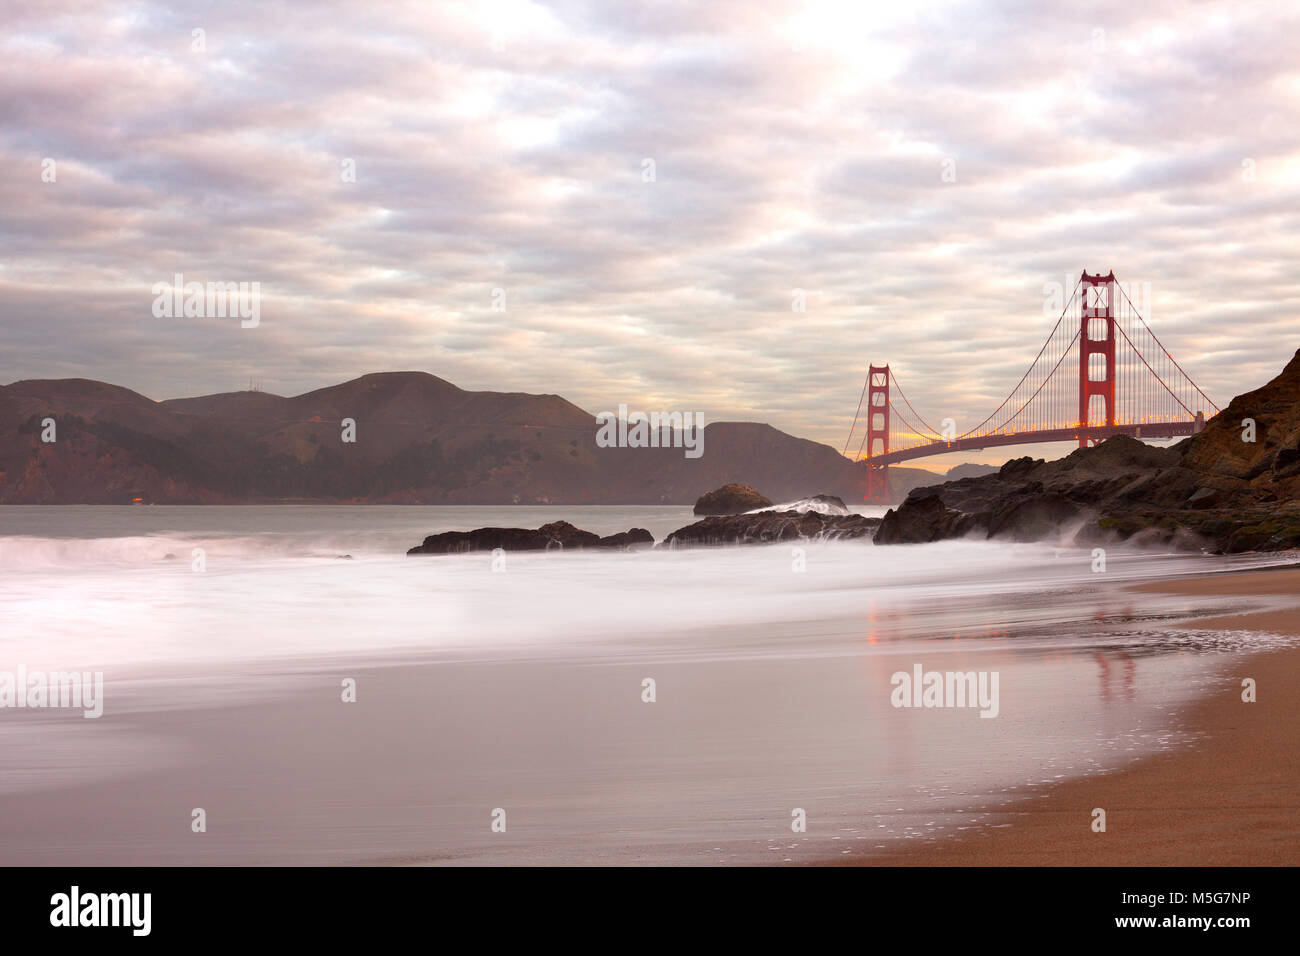 Golden Gate Bridge from Baker Beach, San Francisco, California, USA - Stock Image